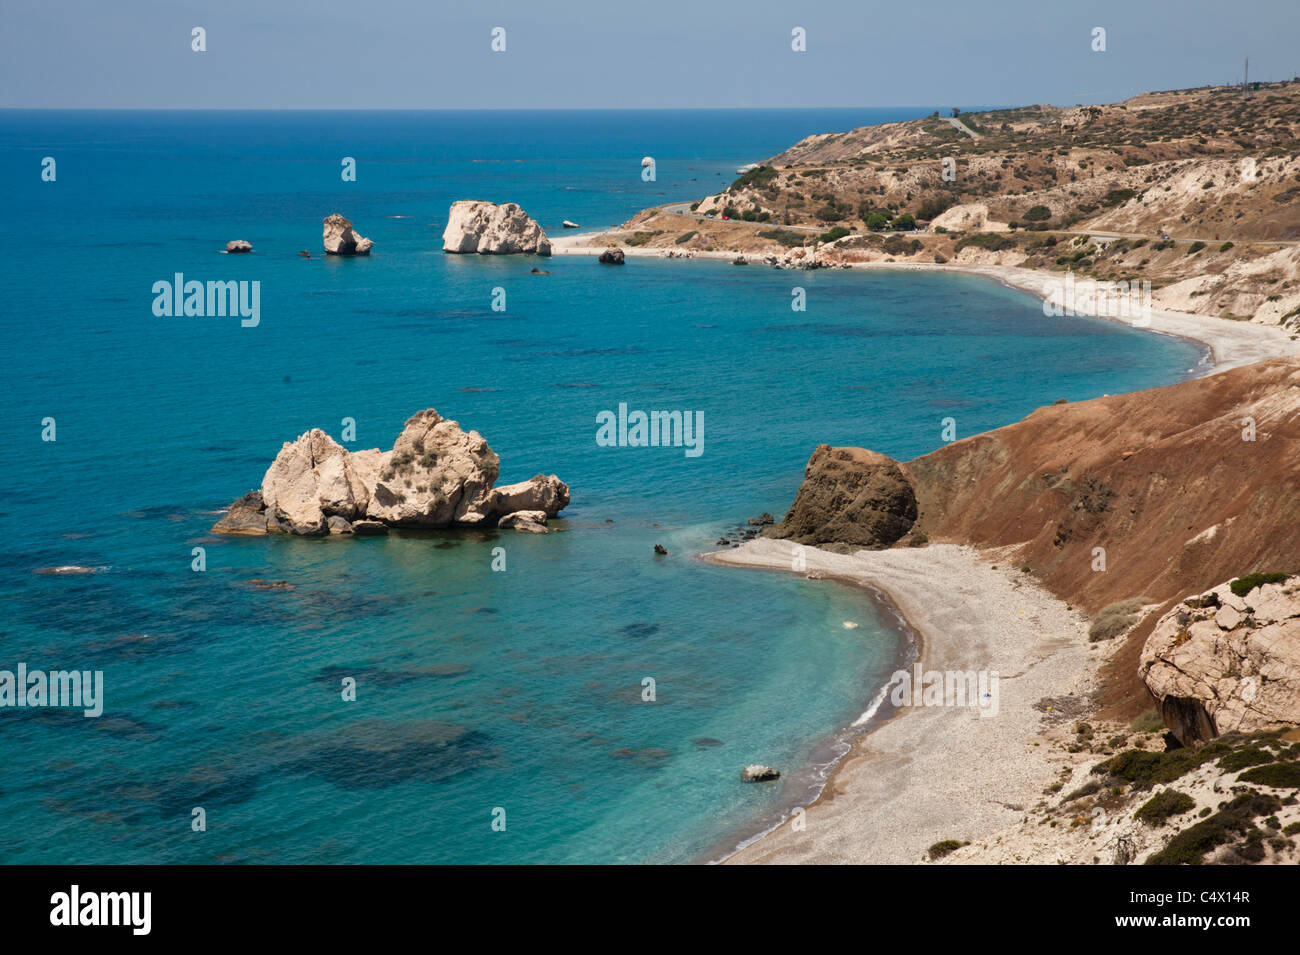 Petra Tou Romiou (Rock of the Greek), or Aphrodite's Rock, a sea stack in Cyprus, is the mythological birthplace - Stock Image